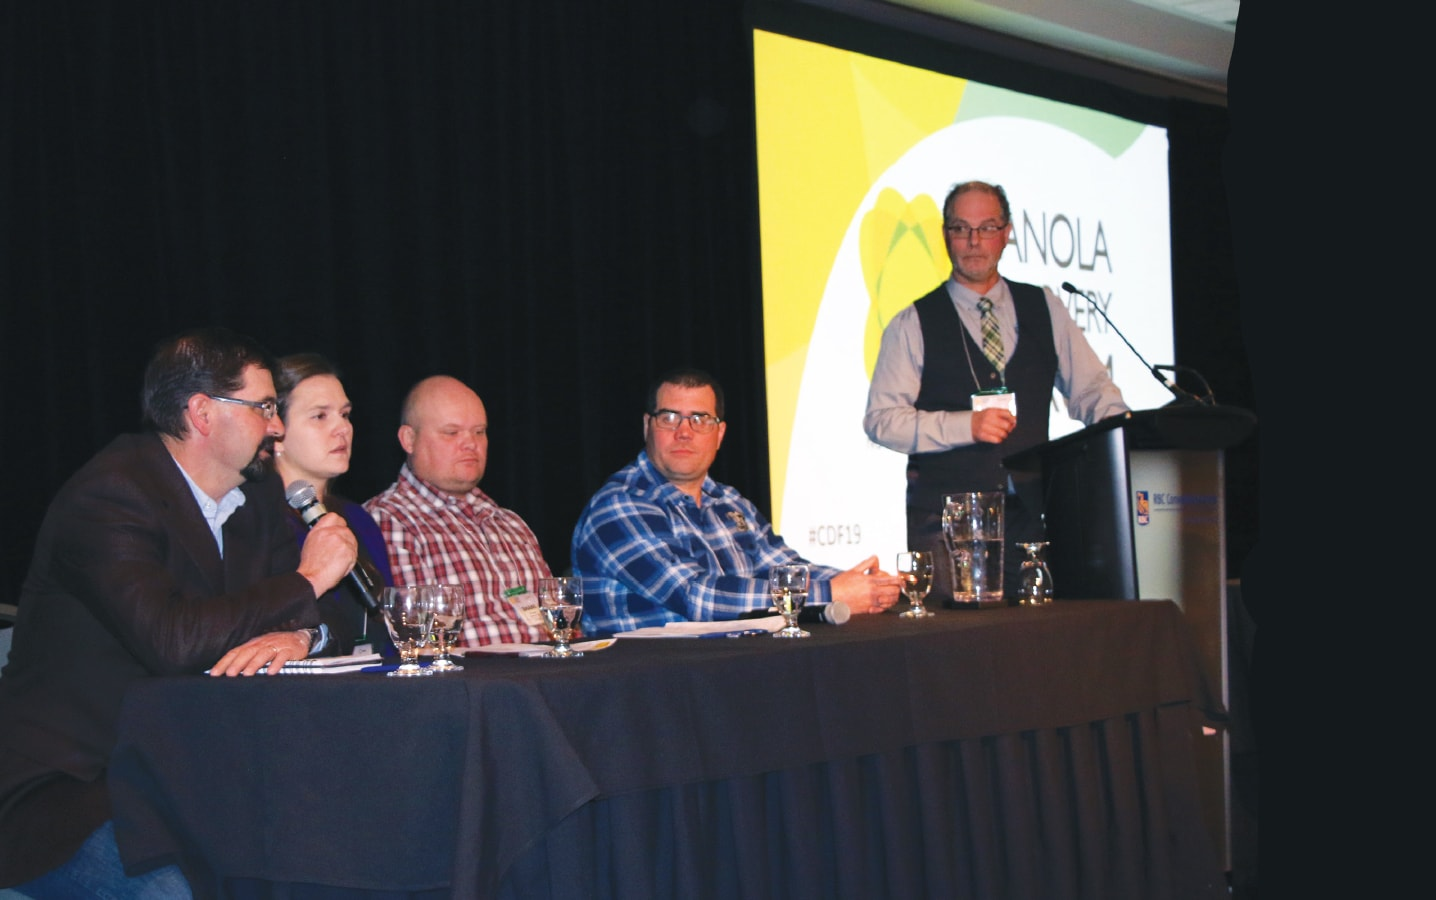 Canola Discovery Forum panelists